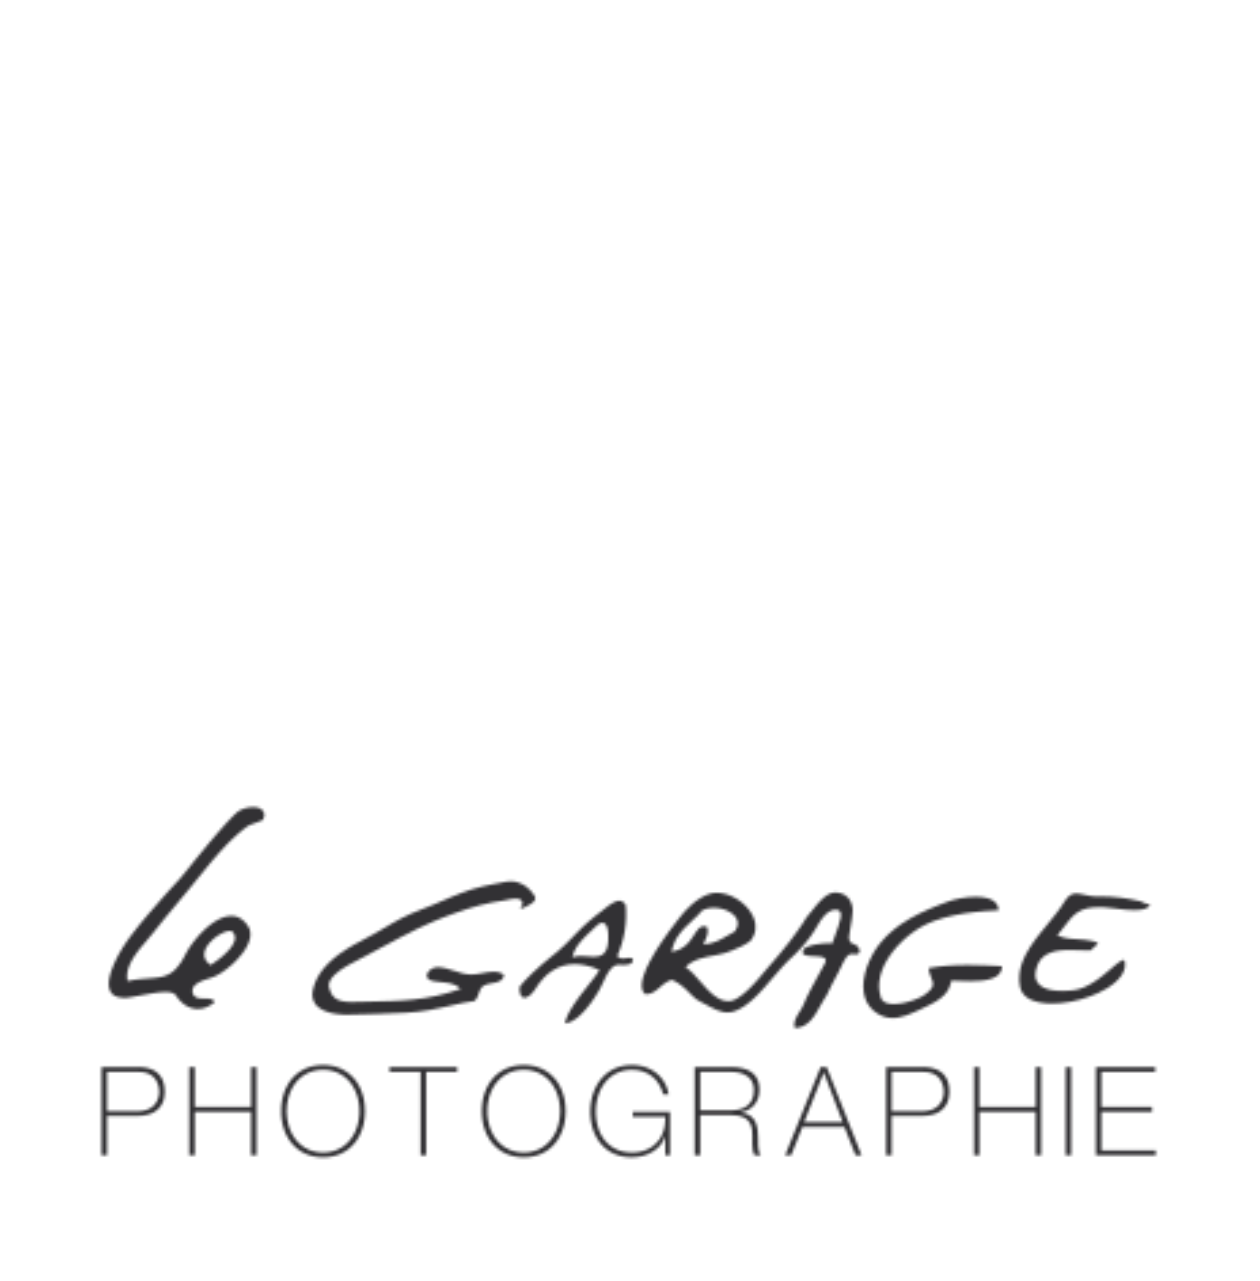 Le Garage Photographie, formations et stages photo à Marseille